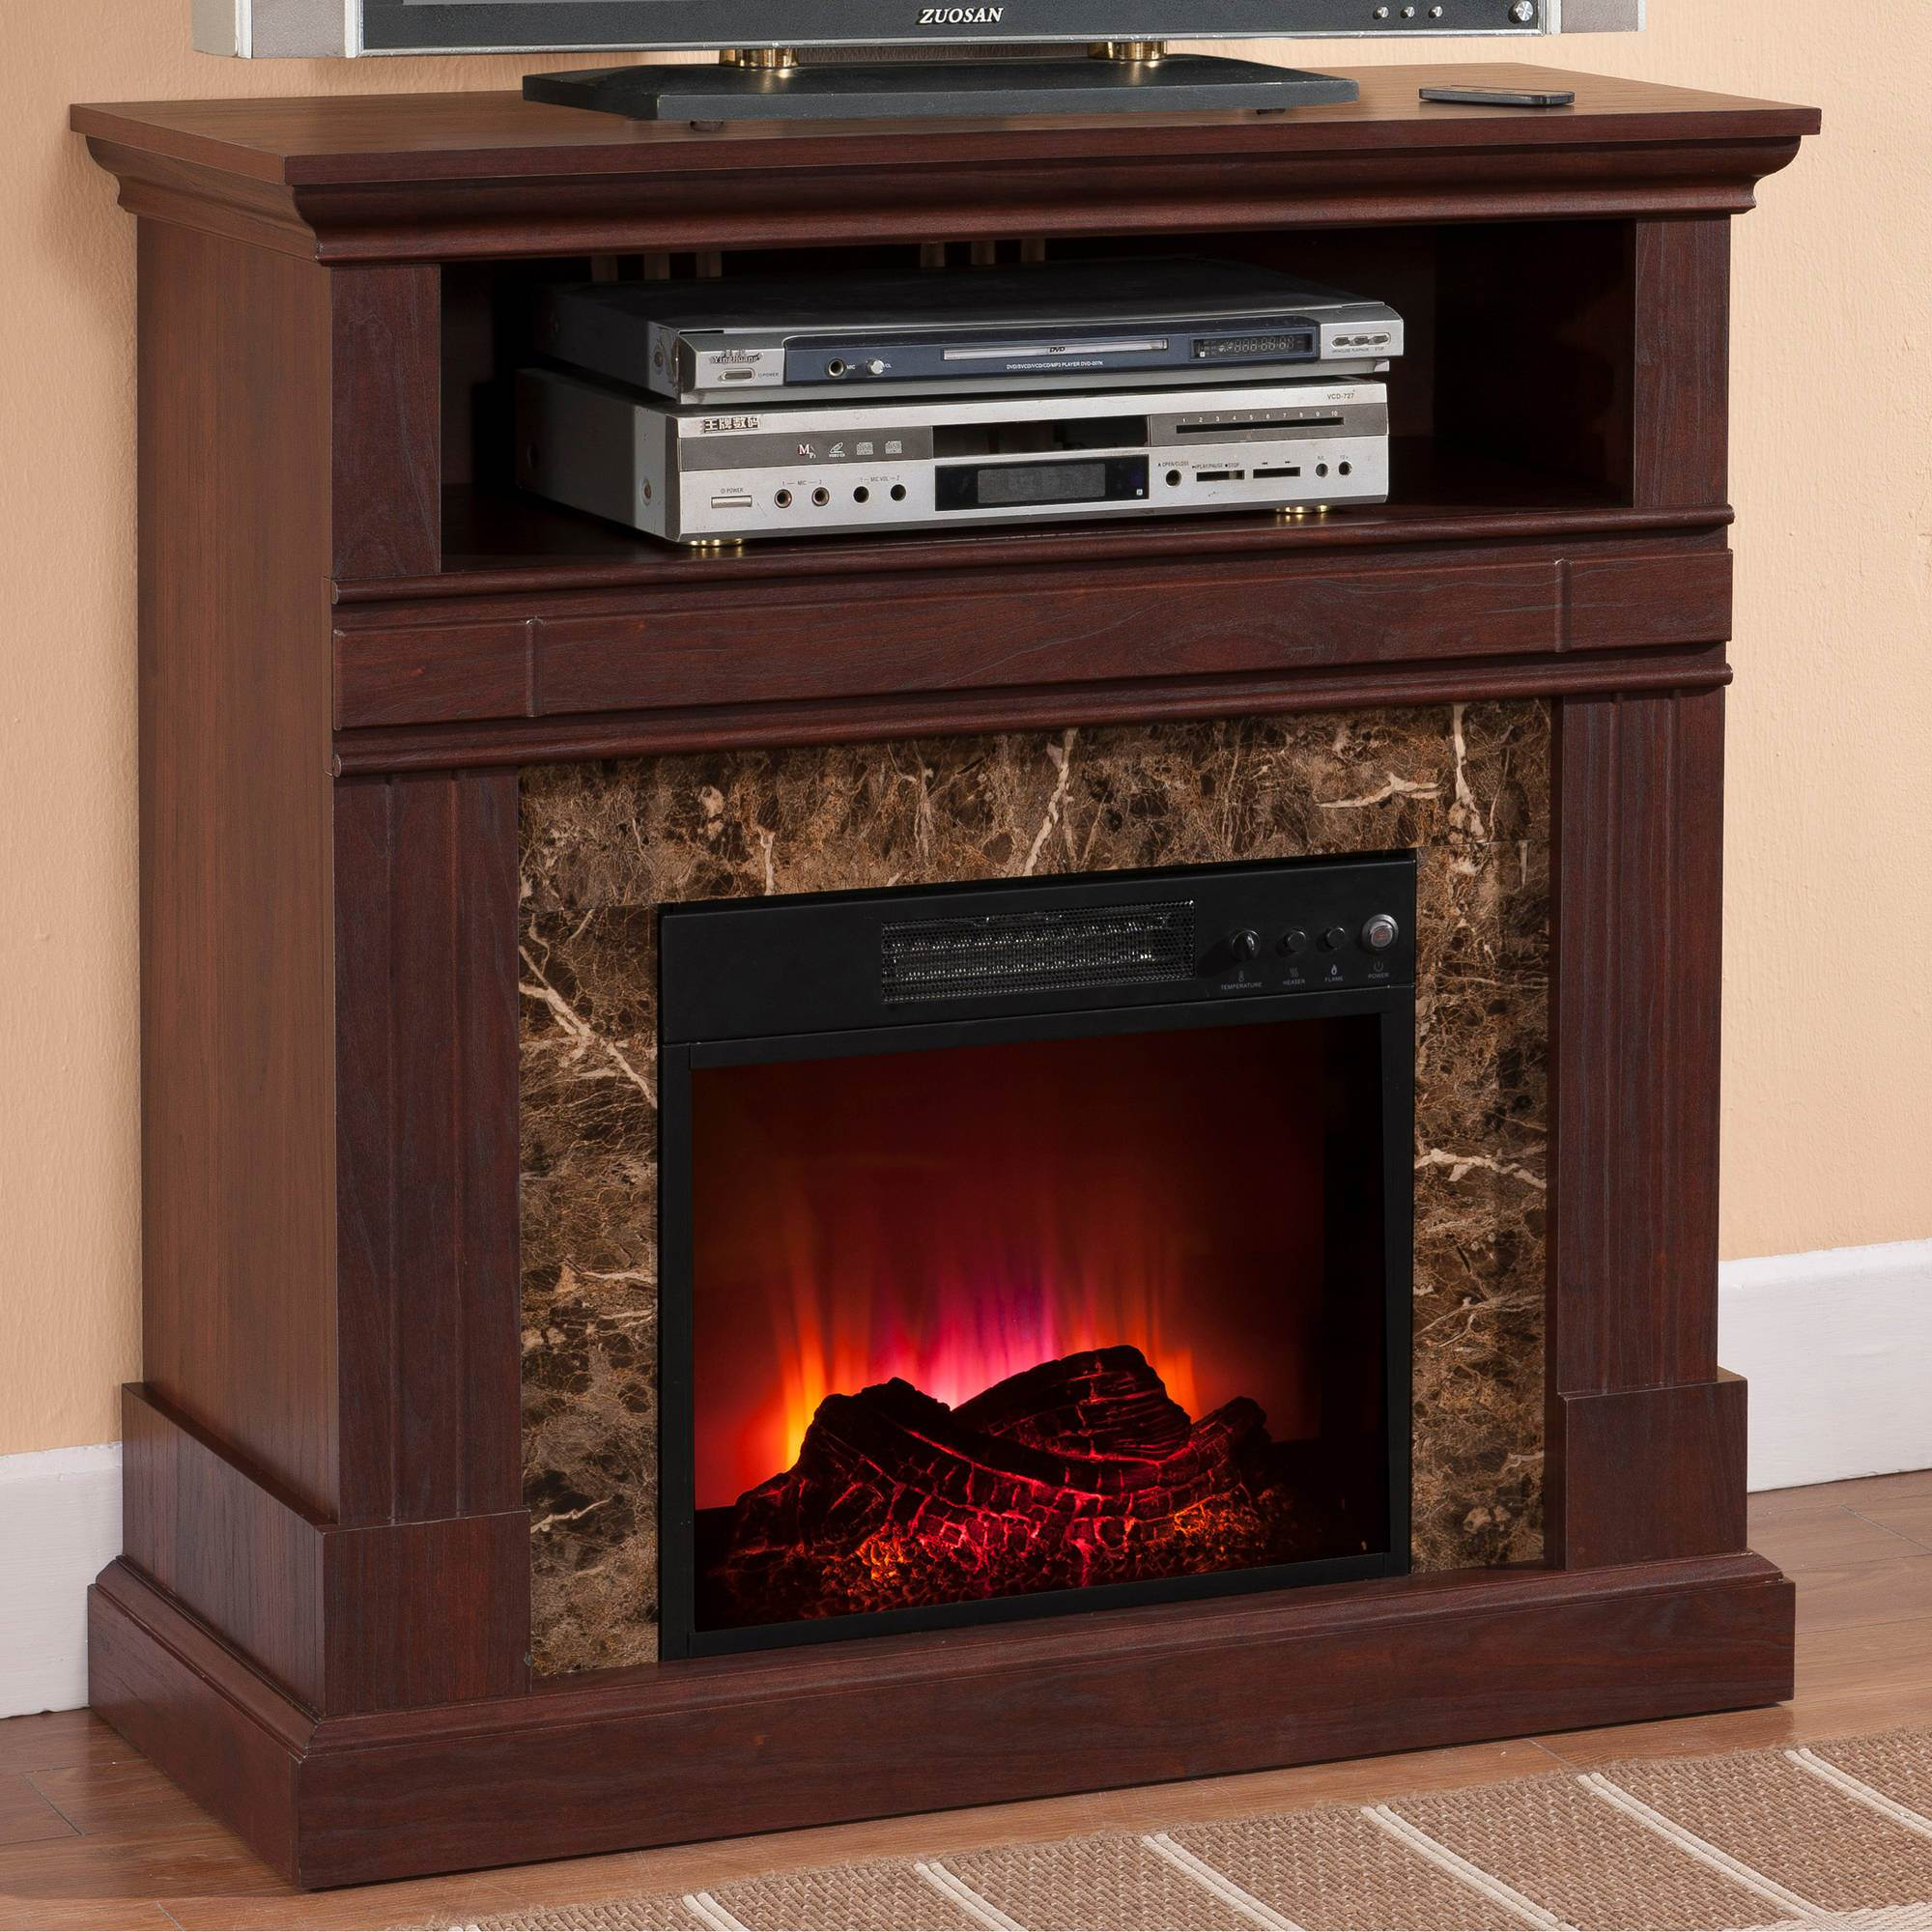 Small Corner Fireplace Tv Stand New Corner Electric Fireplace Tv Stand